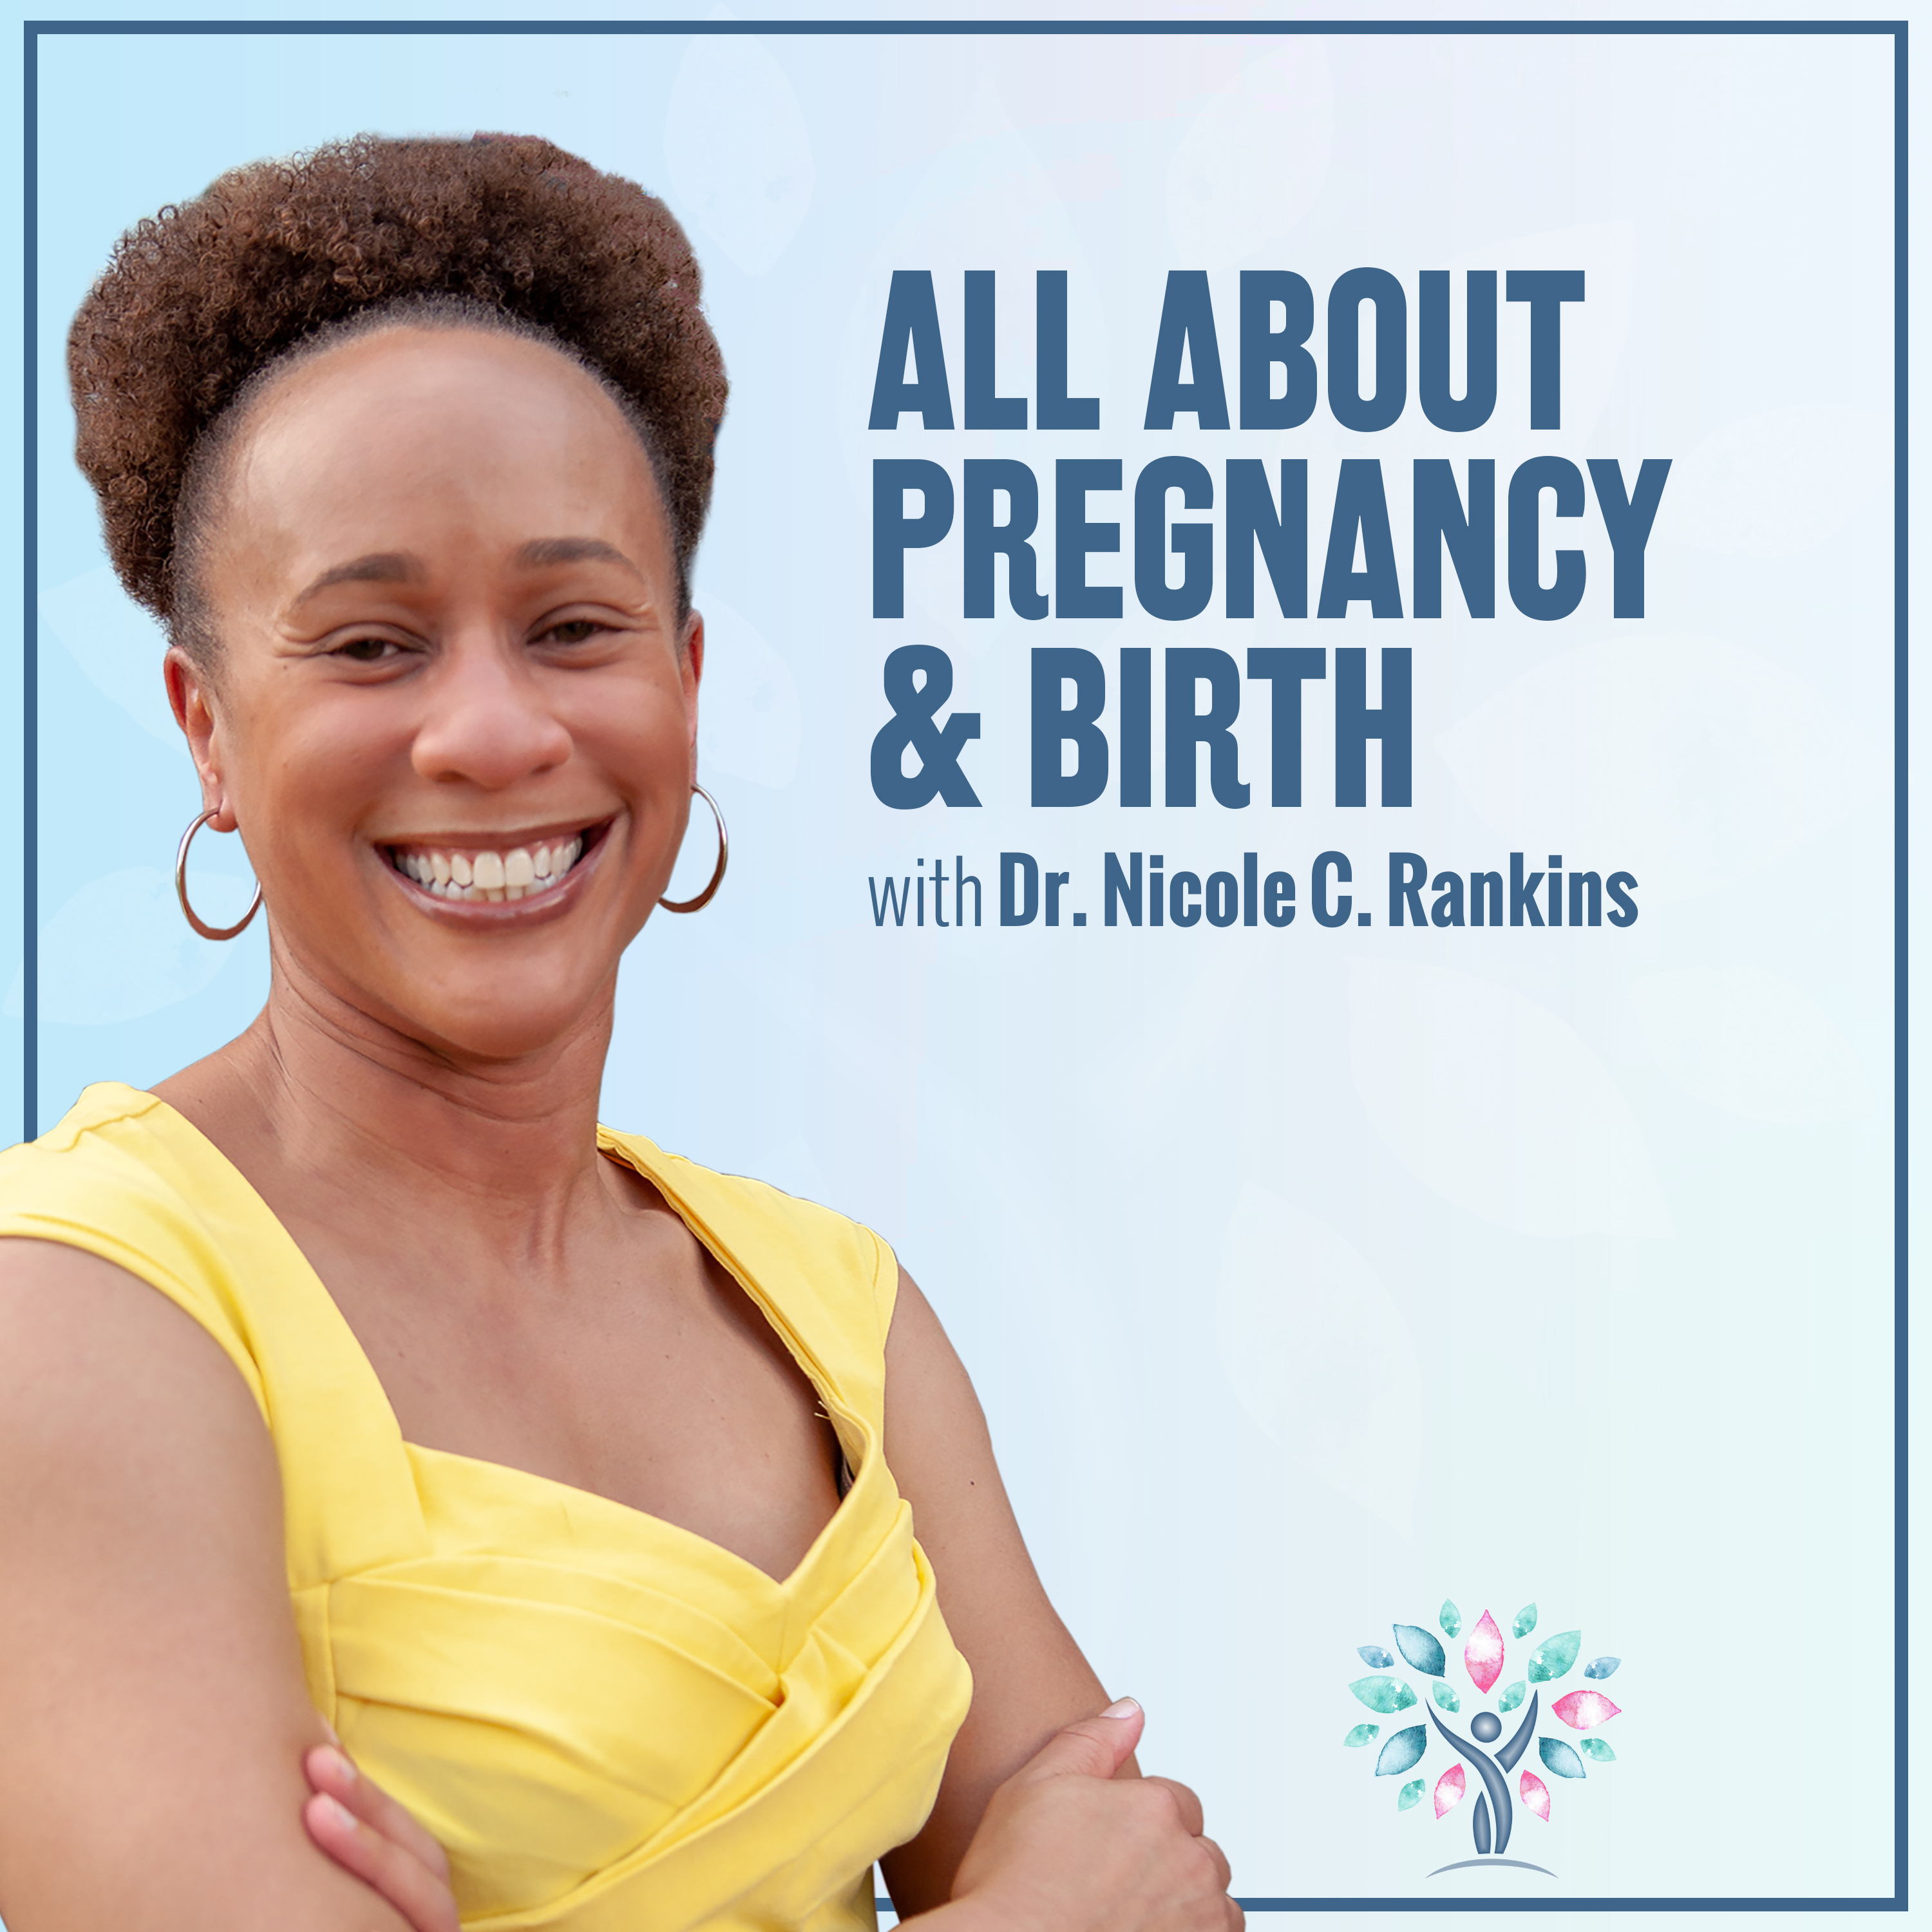 All About Pregnancy & Birth